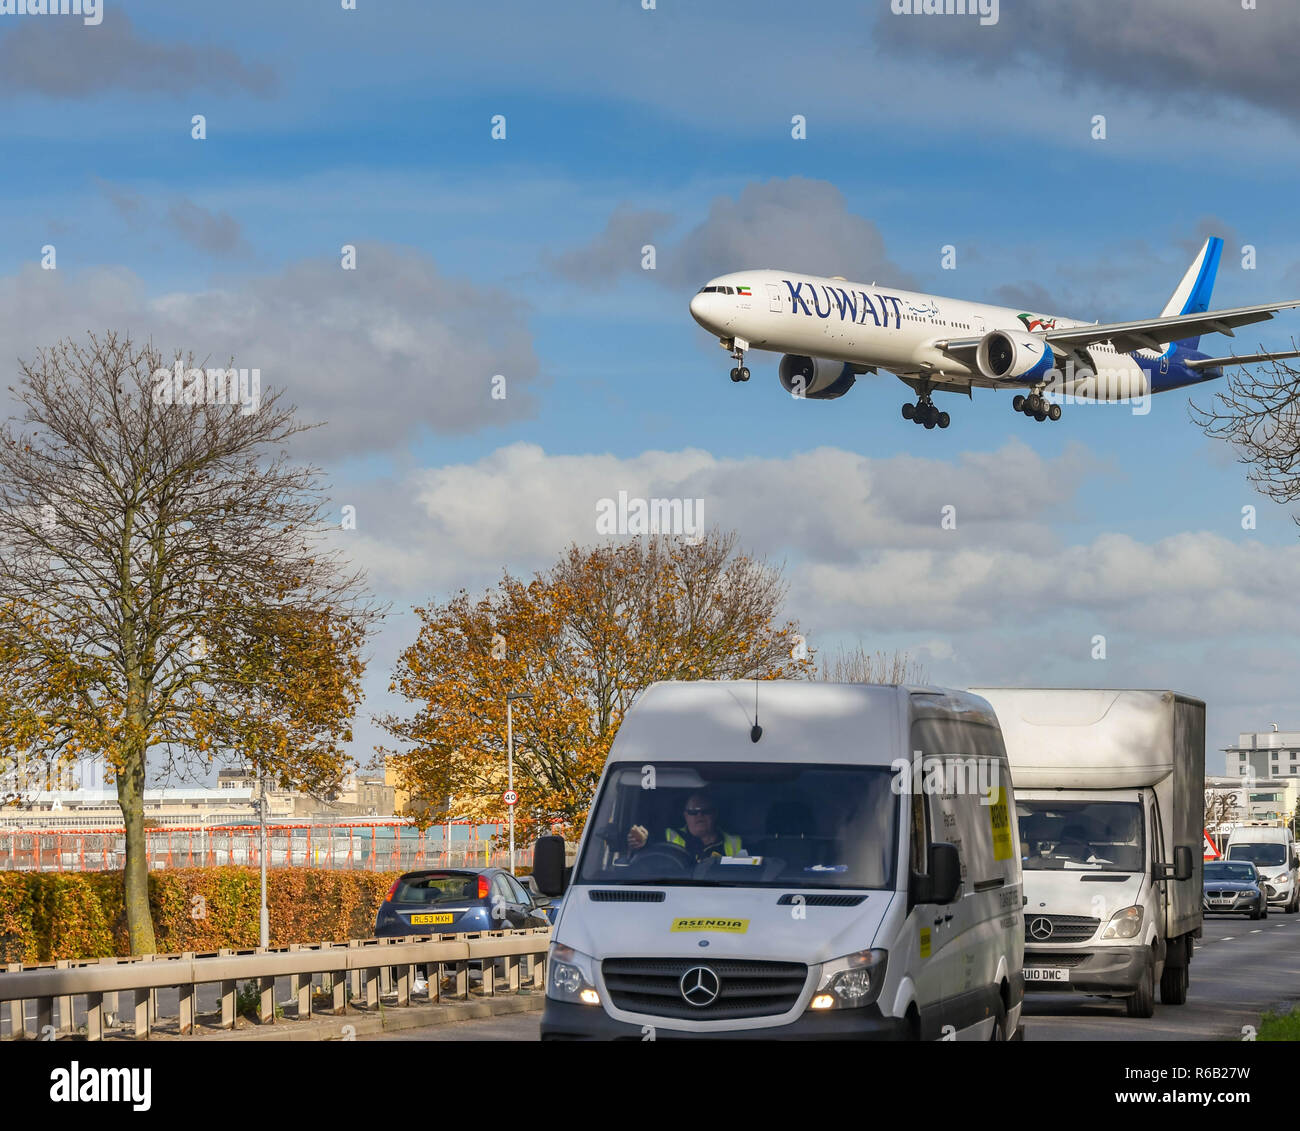 LONDON, ENGLAND - NOVEMBER 2018: Commercial vehicles on the A30 road at London Heathrow Airport with a large passenger jet passing overhead. Stock Photo